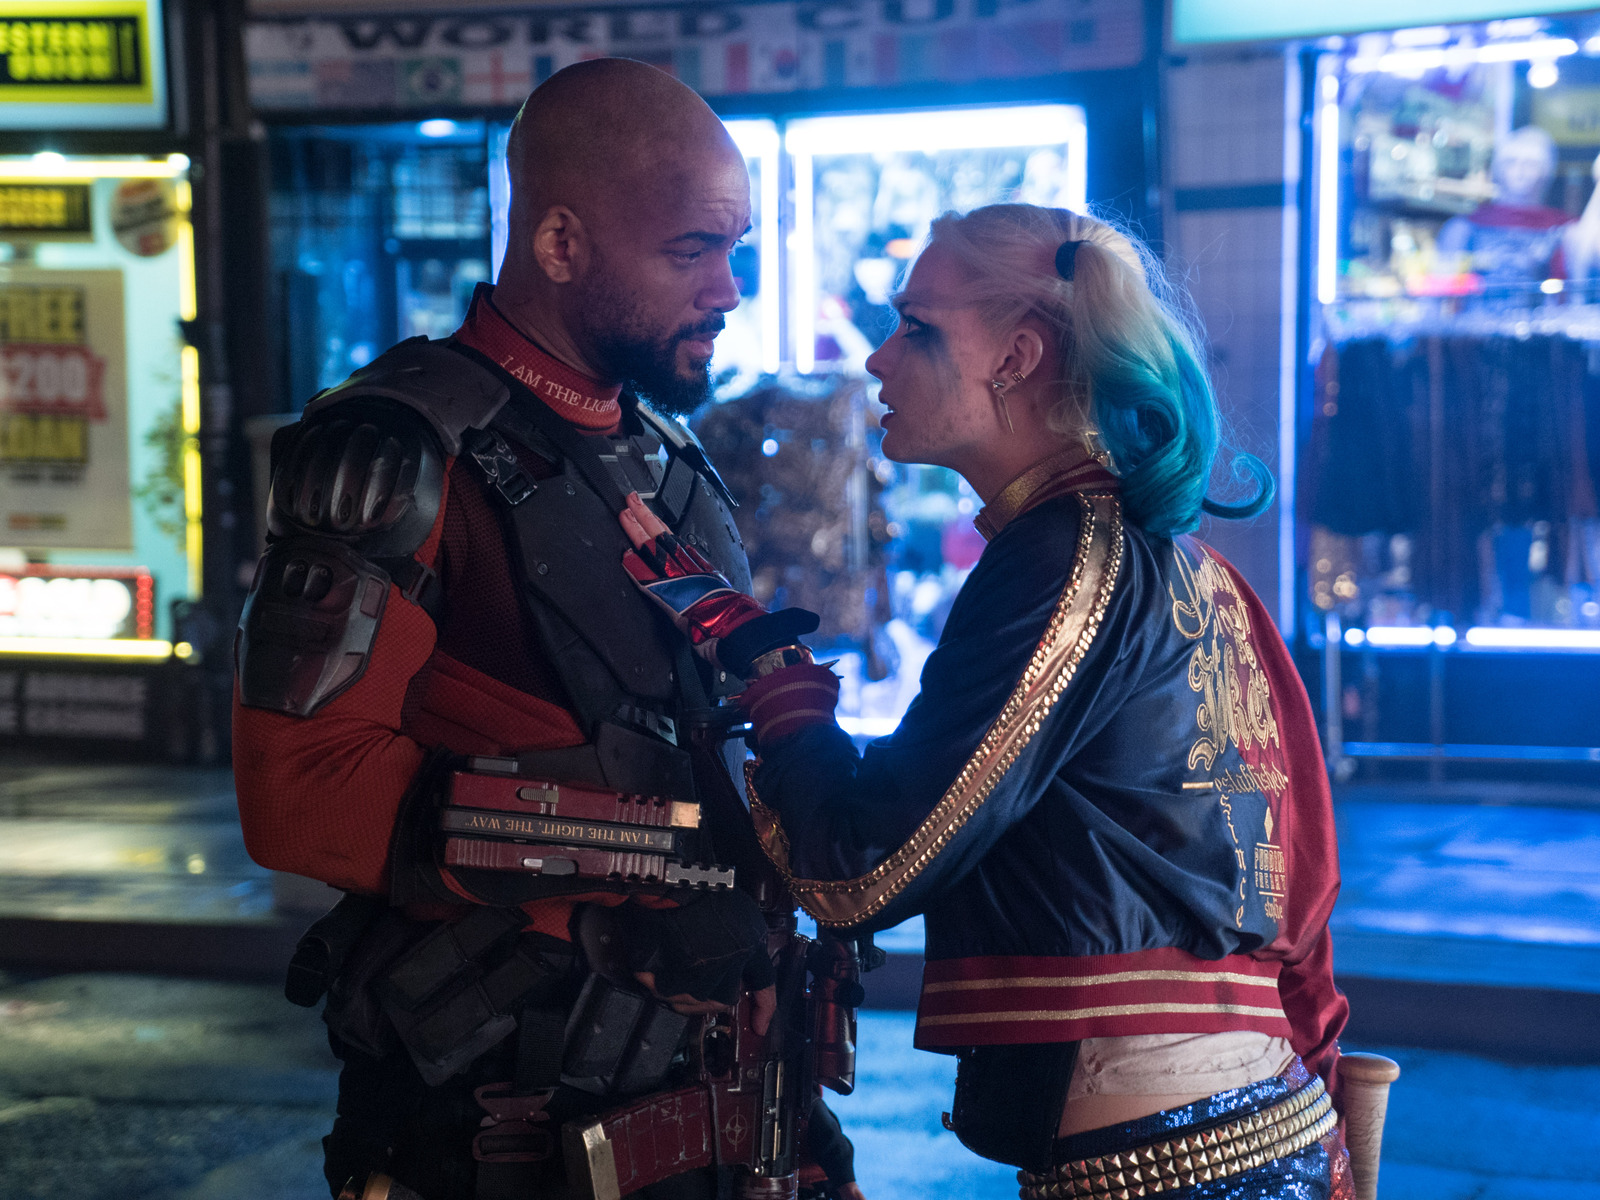 1600x1200 Suicide Squad Will Smith Margot Robbie 1600x1200